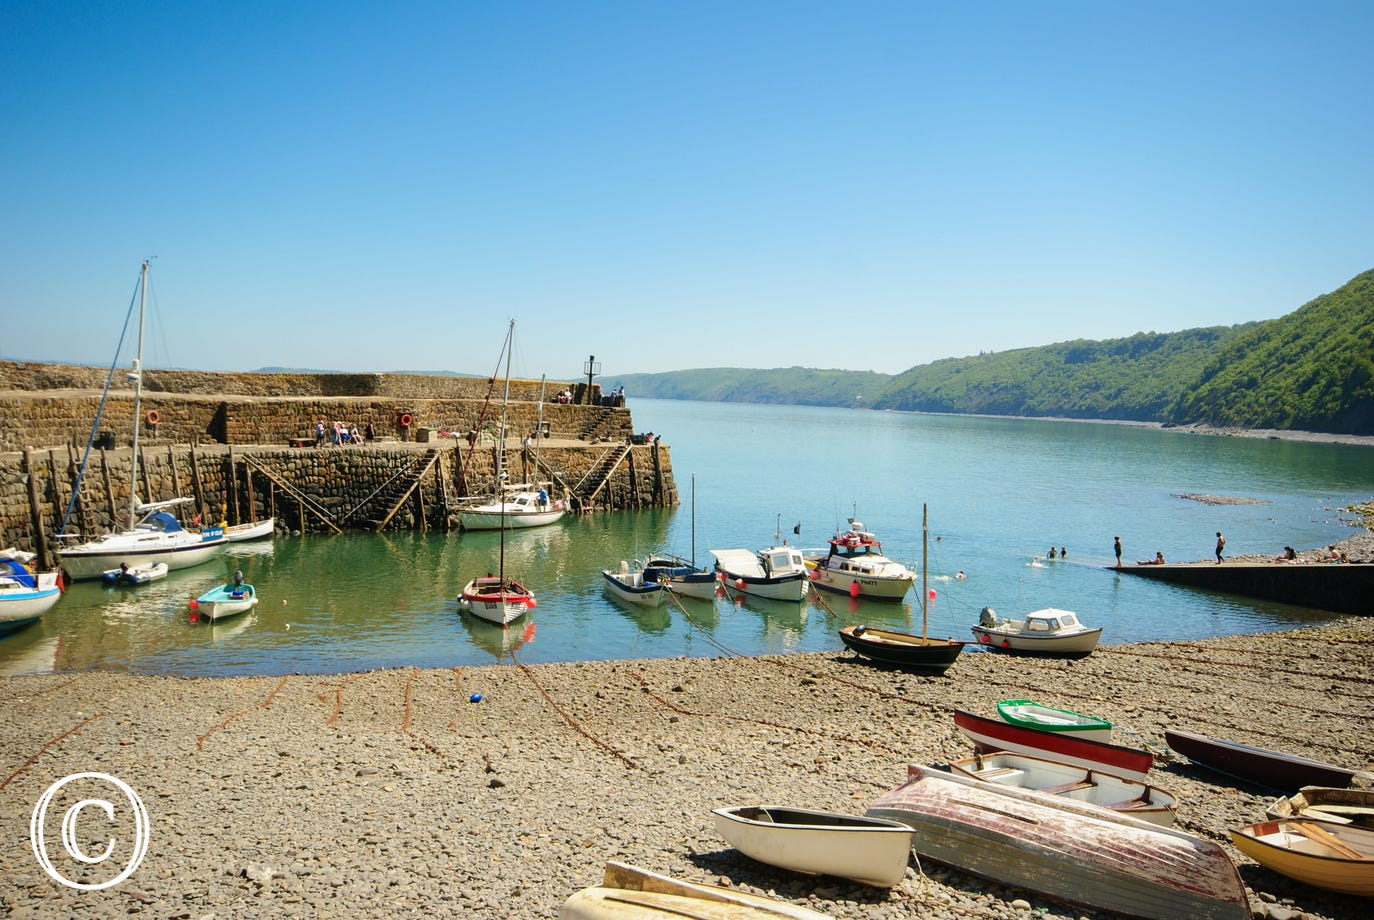 The historic fishing village of Clovelly is approximately 4 miles away